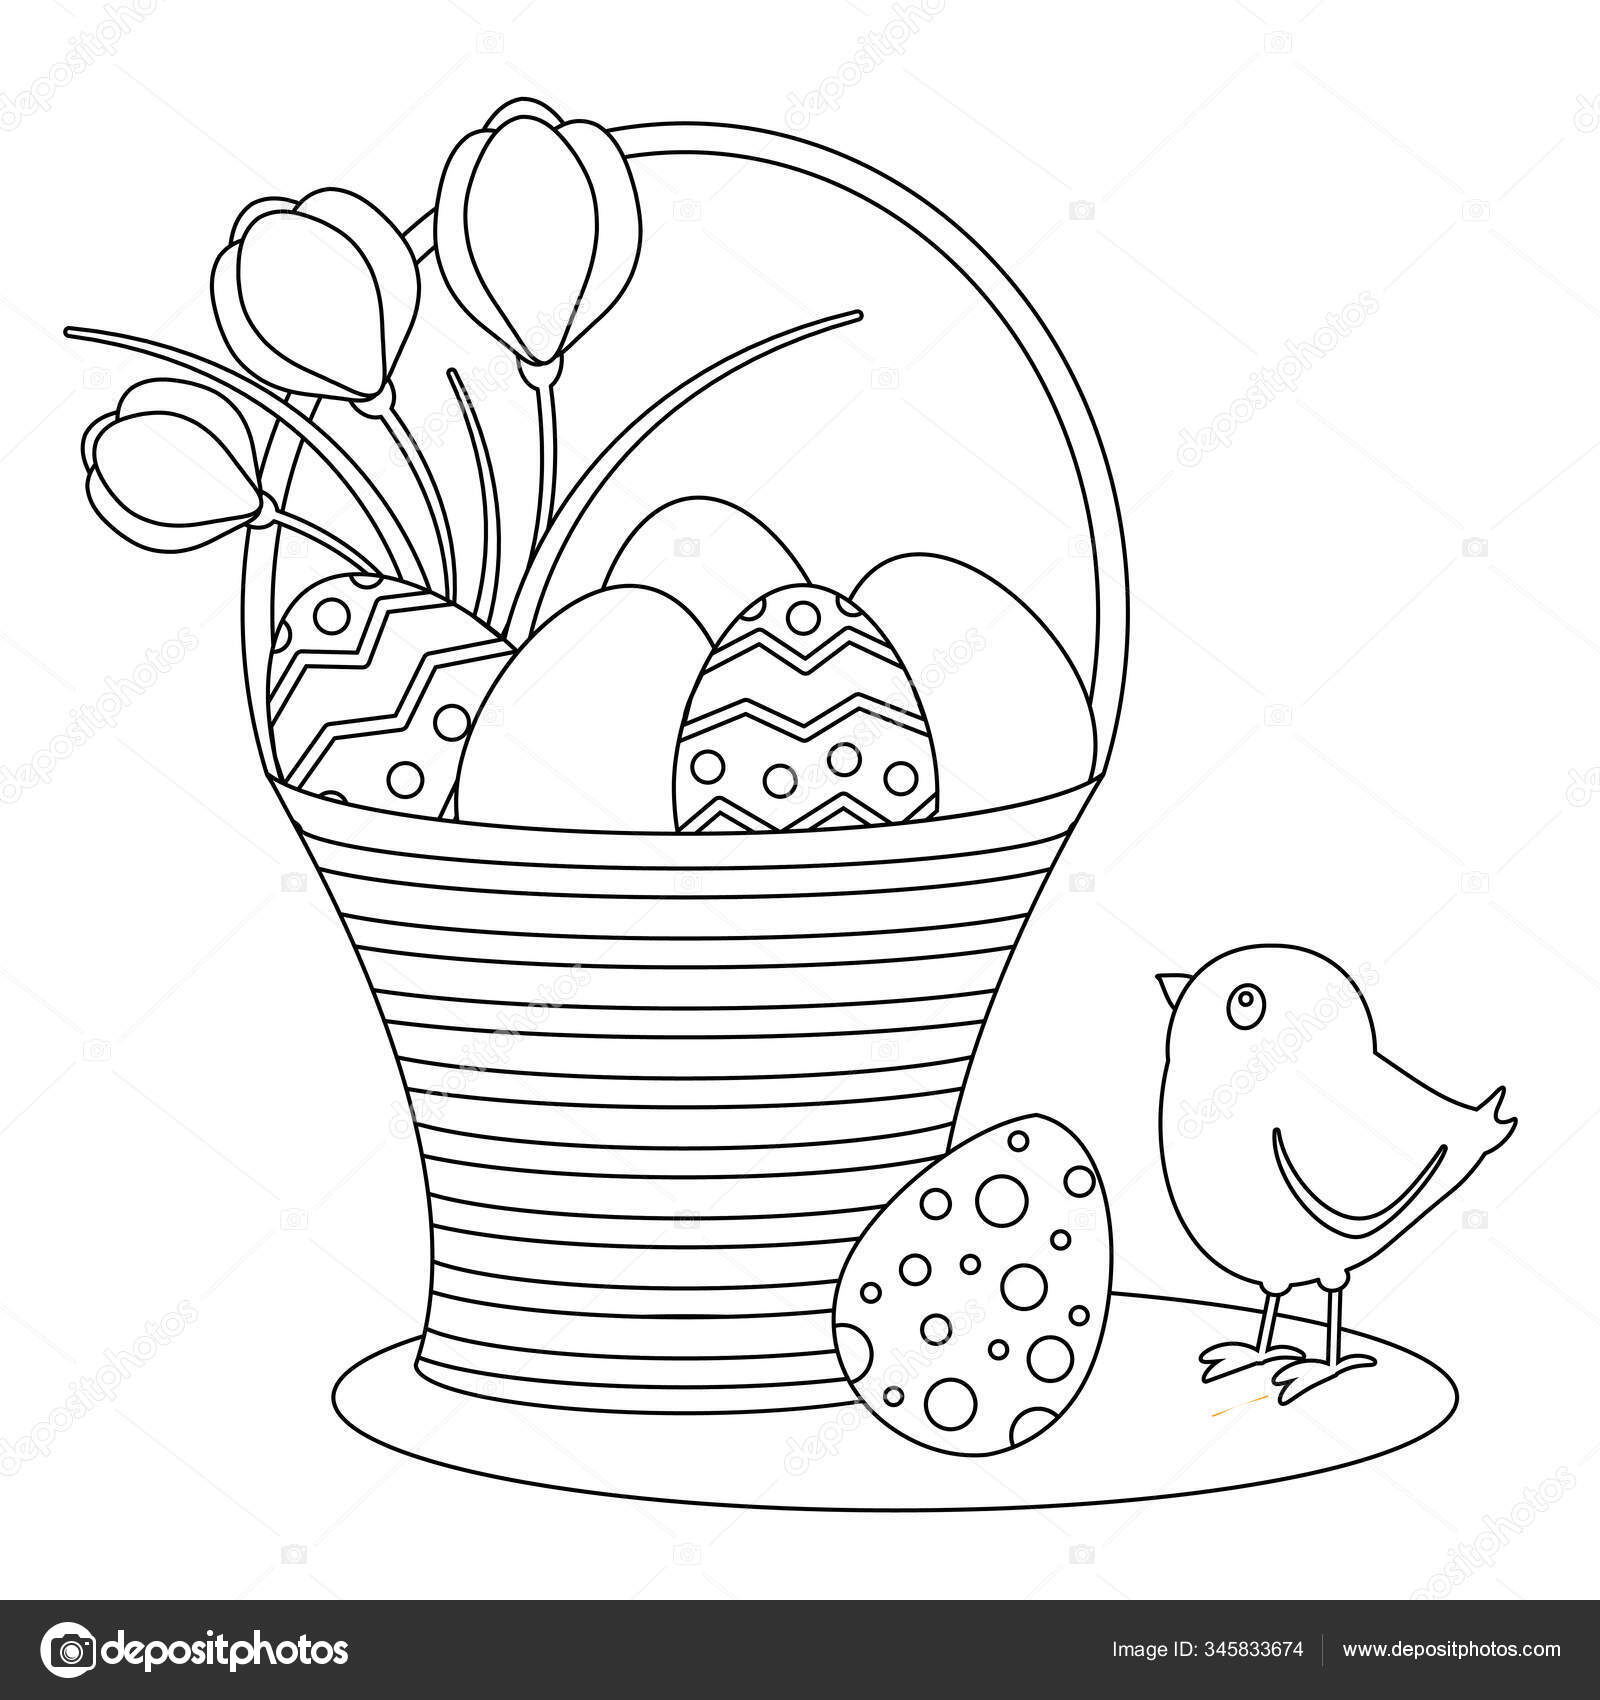 Https Cz Depositphotos Com 345833674 Stock Illustration Coloring Page Cute Chick Easter Html